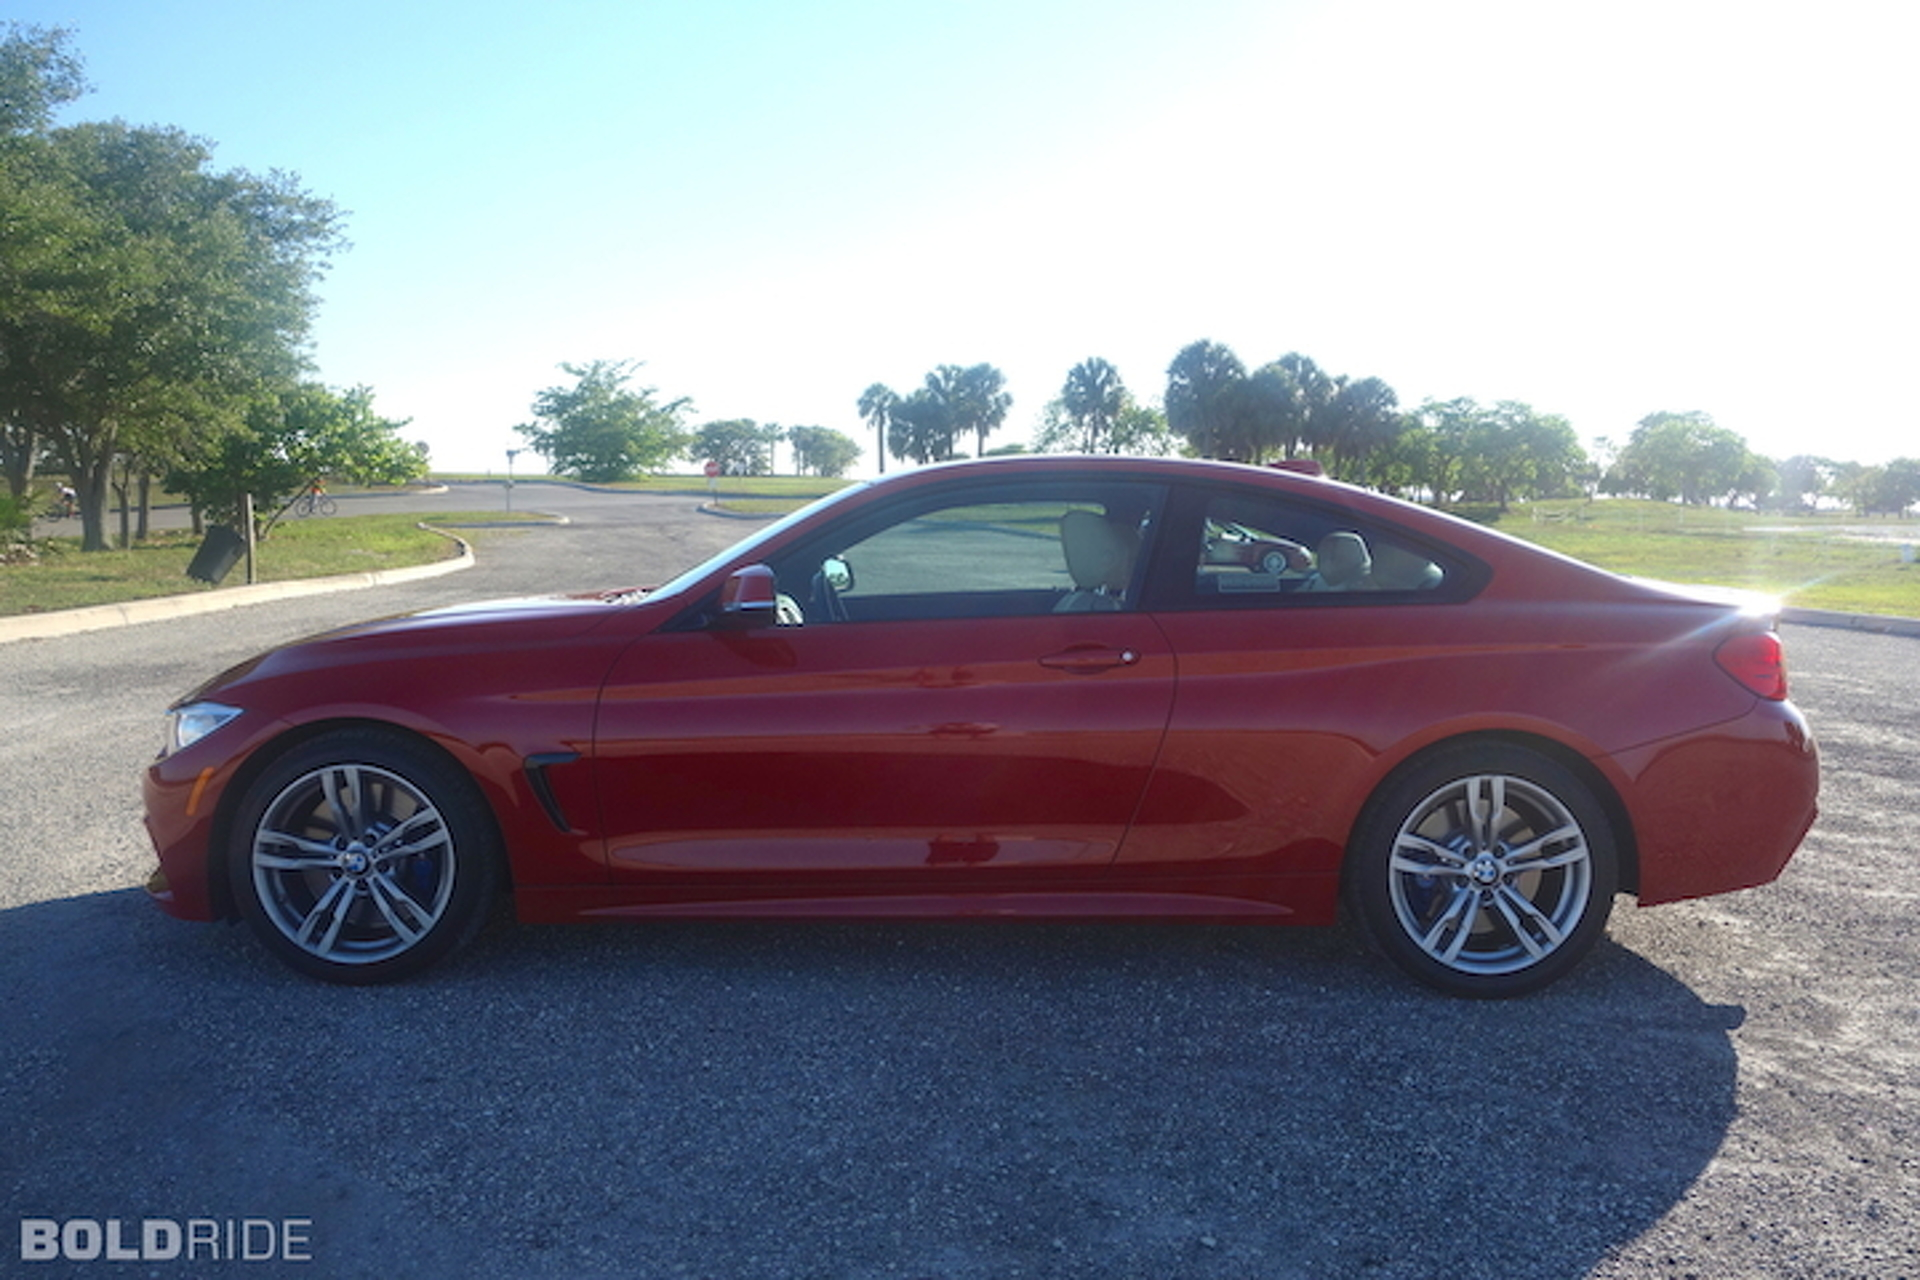 2014 Bmw 435I Review Your Sexy, Overpriced Ex-Girlfriend-4263